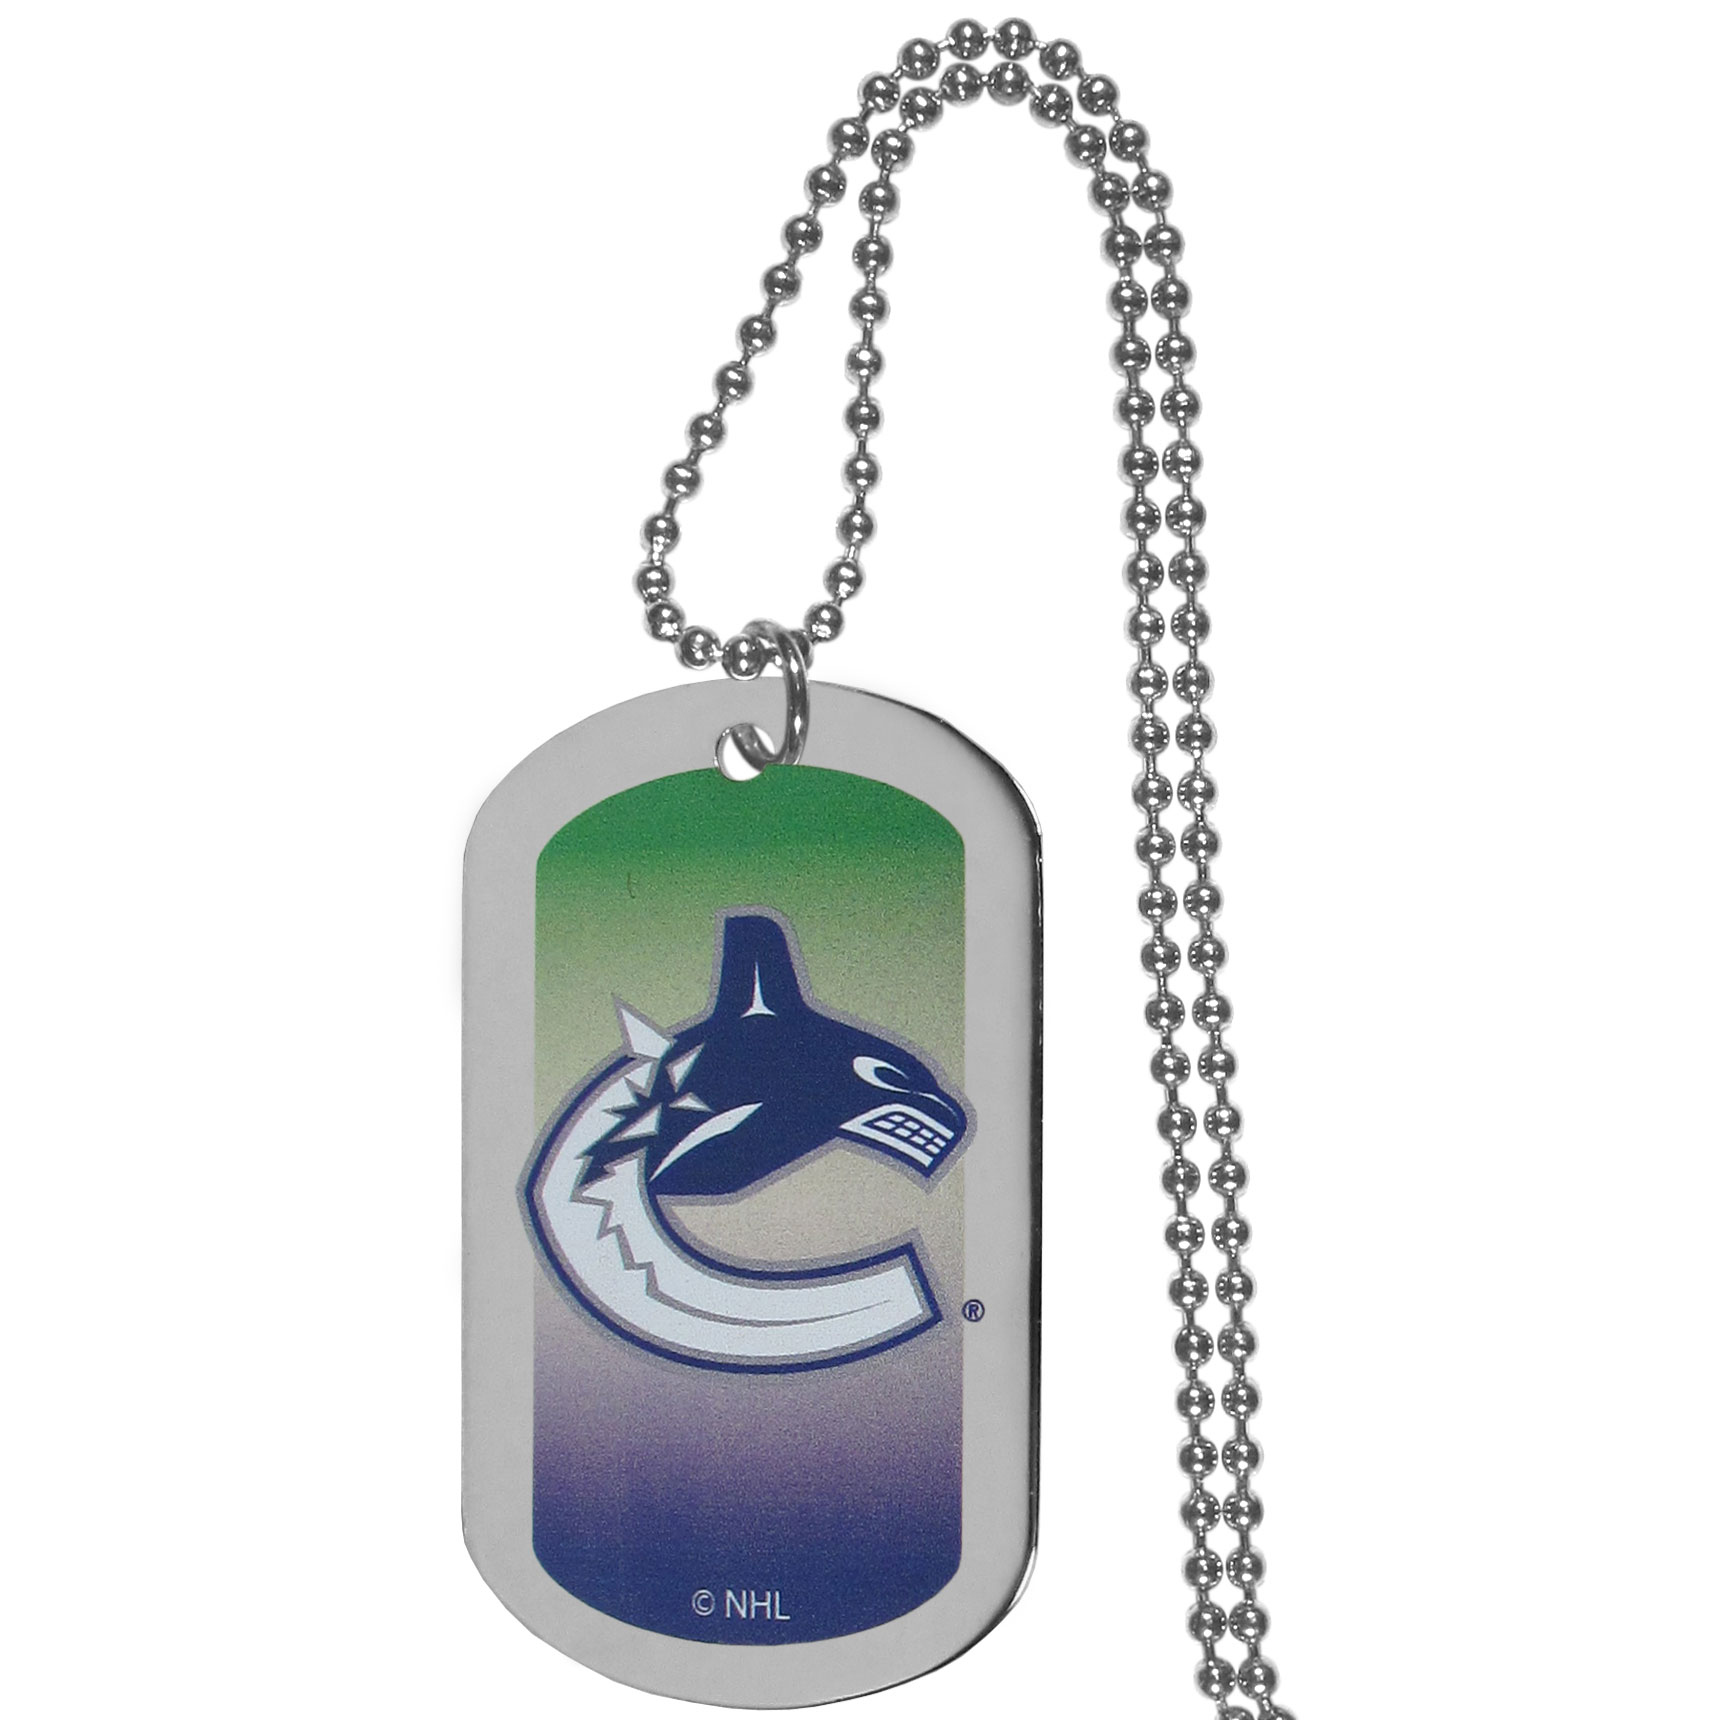 Vancouver Canucks® Team Tag Necklace - Dog tag necklaces are a fashion statement that is here to stay. The sporty version of the classic tag features a gradient print in team colors featuring a full color team logo over a high polish tag to create a bold and sporty look. The tag comes on a 26 inch ball chain with a ball and joint clasp. Any Vancouver Canucks® would be proud to wear this attractive fashion accessory.